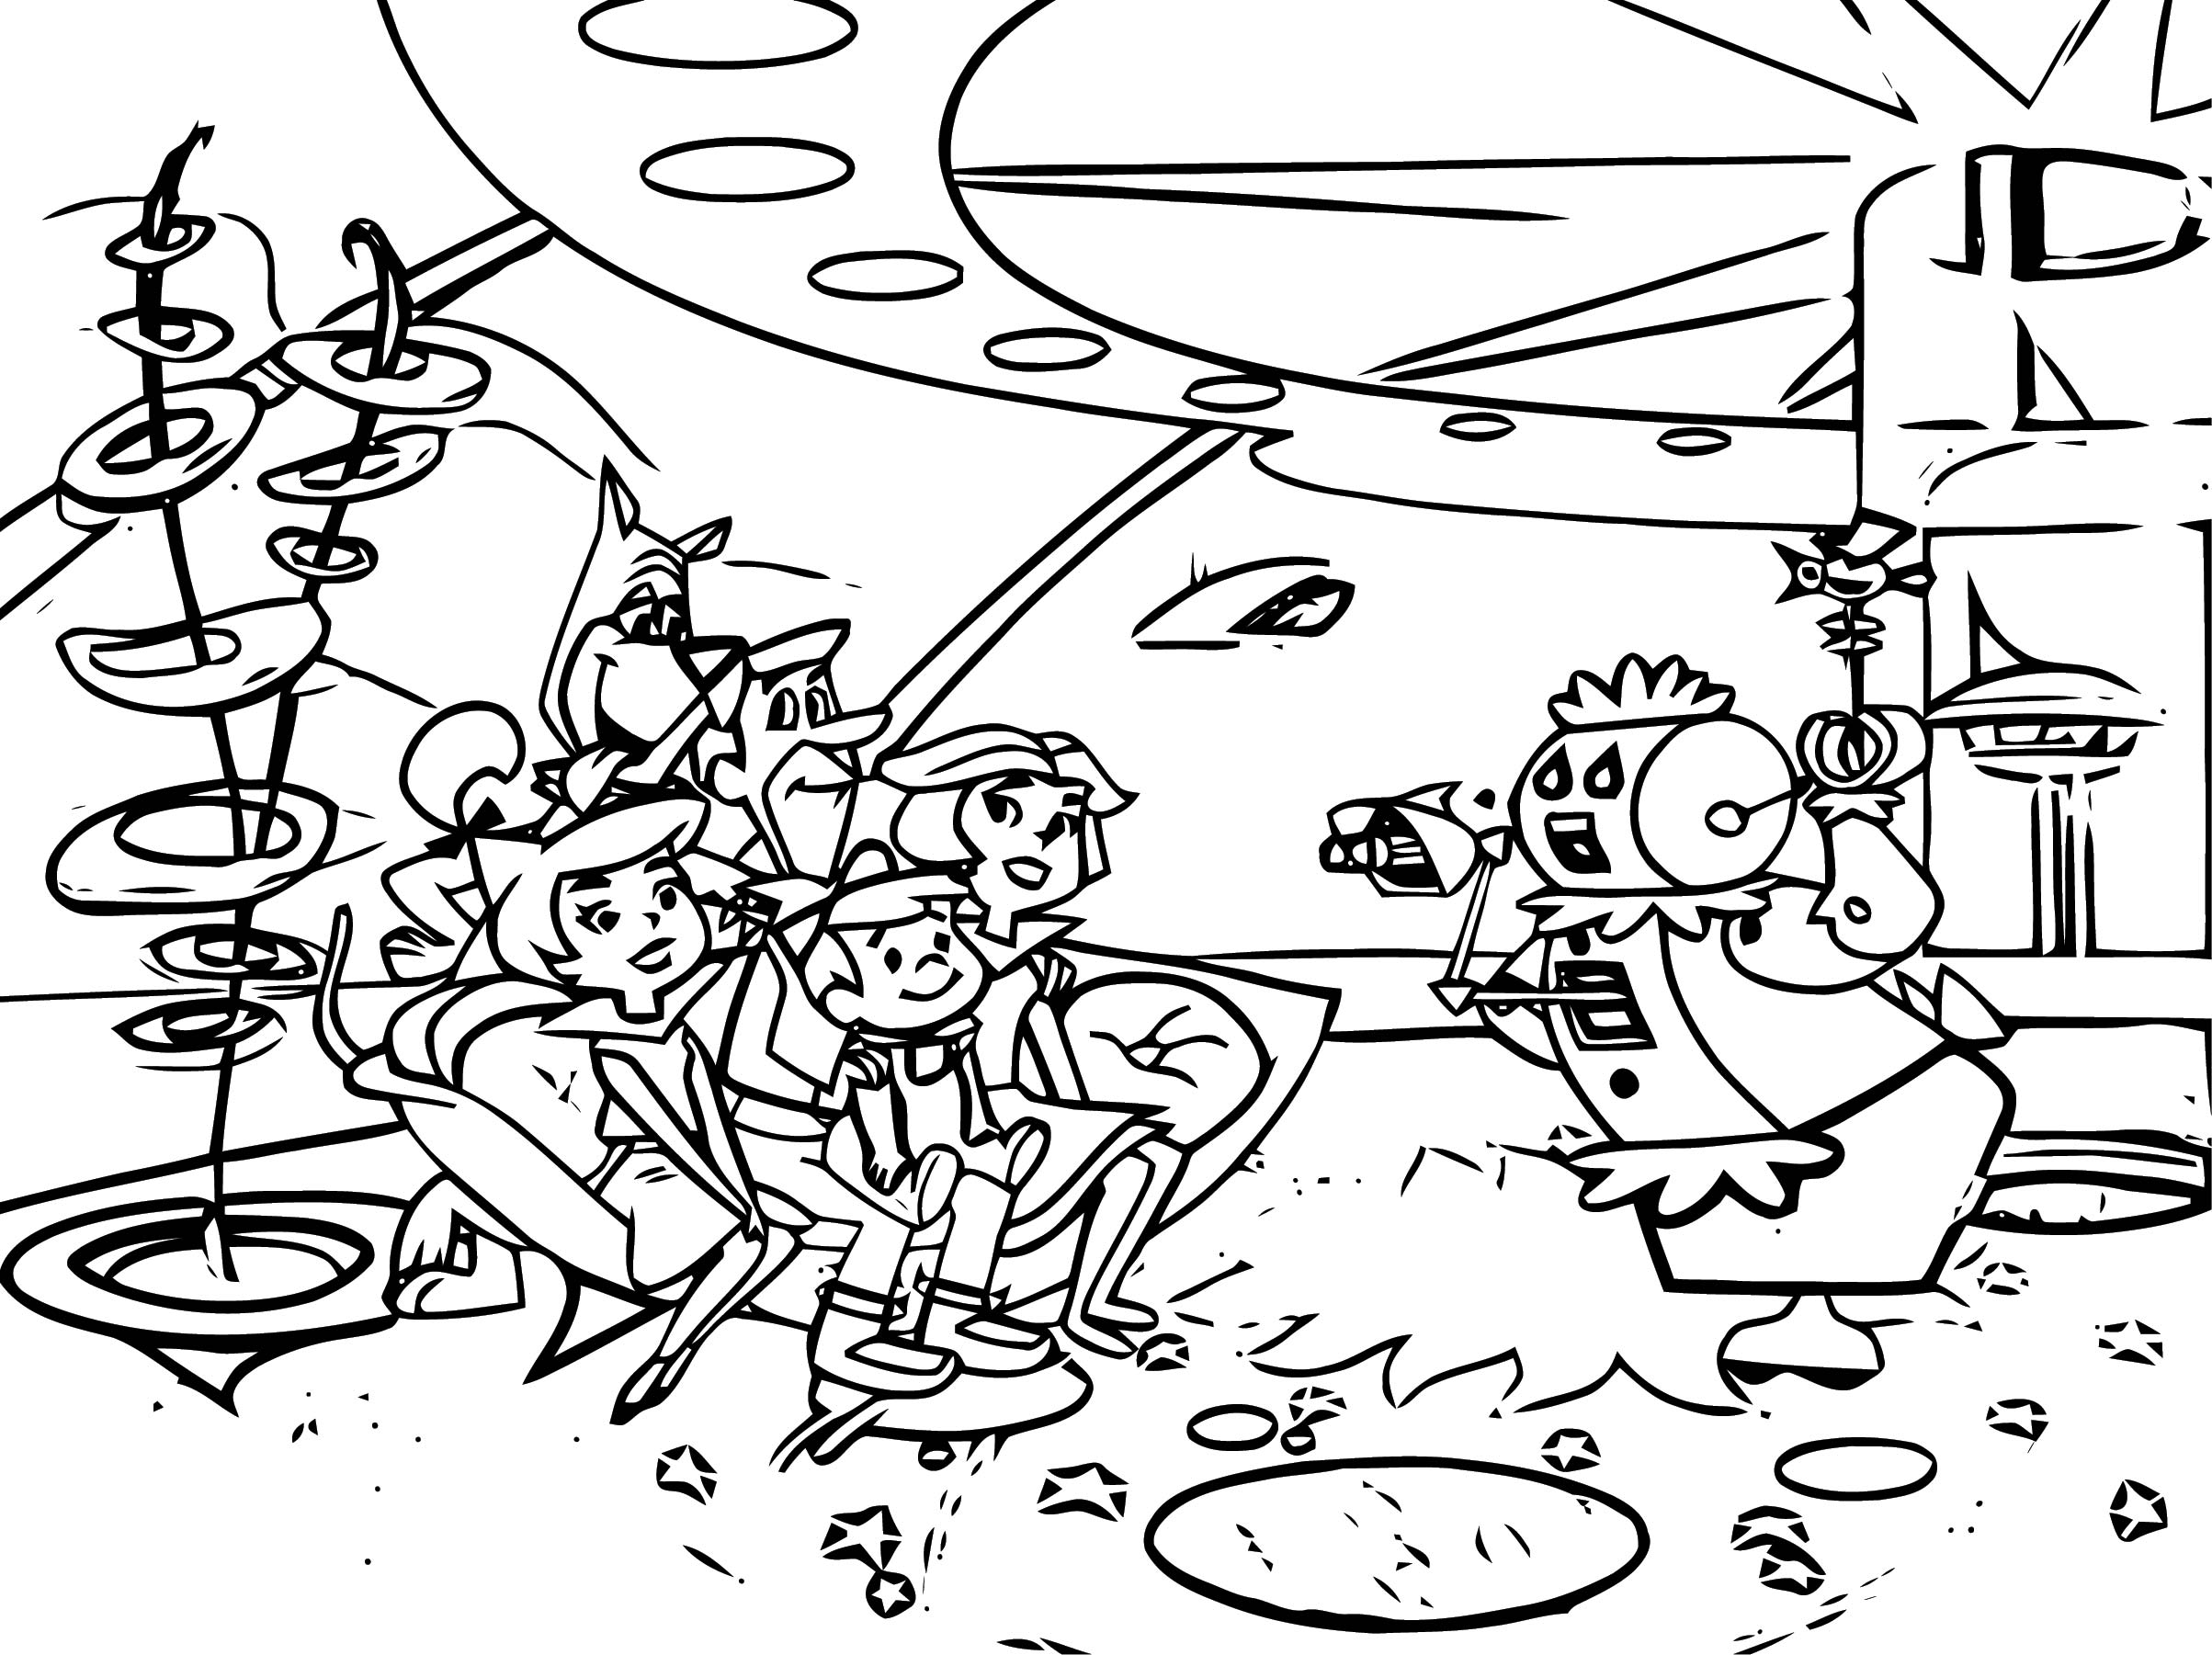 We Still Dont Live Like The Jetsons But Heres How Close We Are Coloring Page